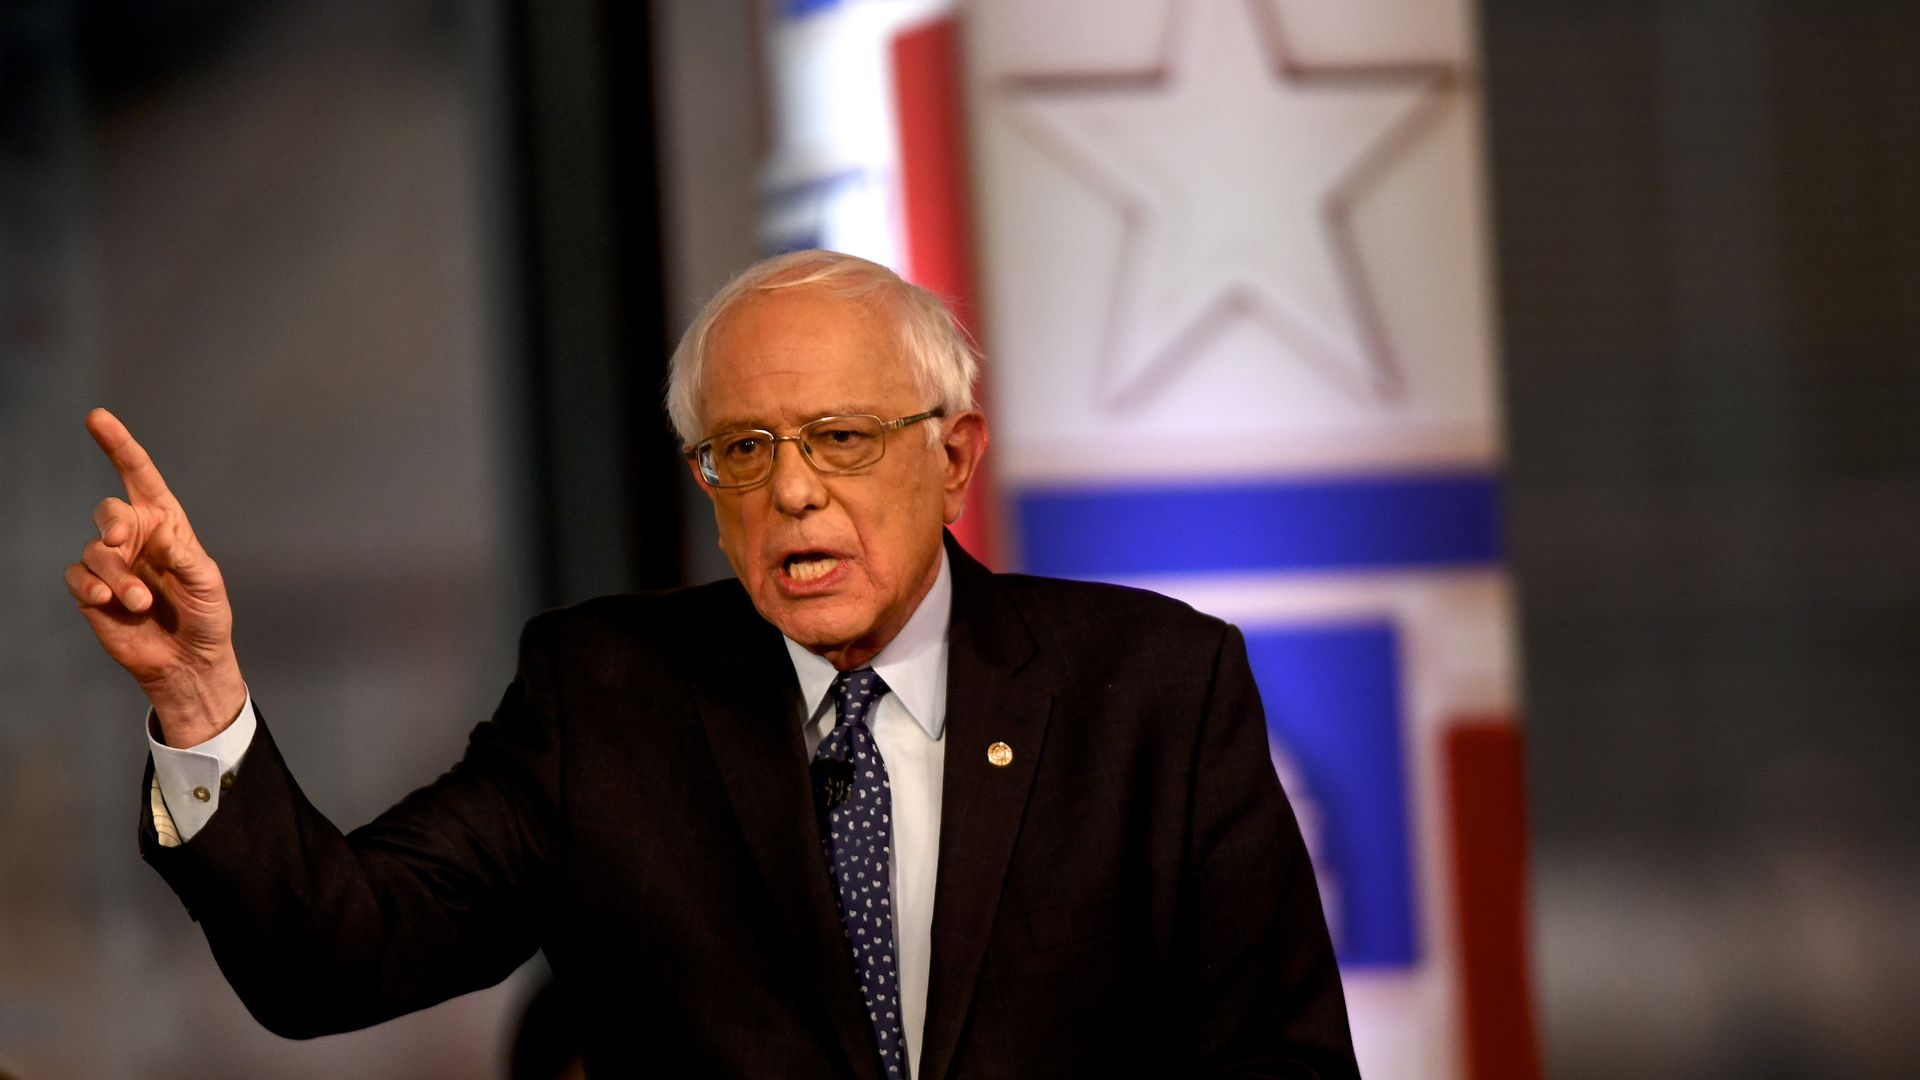 Bernie Sanders wins cheers from Fox News town hall crowd on Medicare for All plan